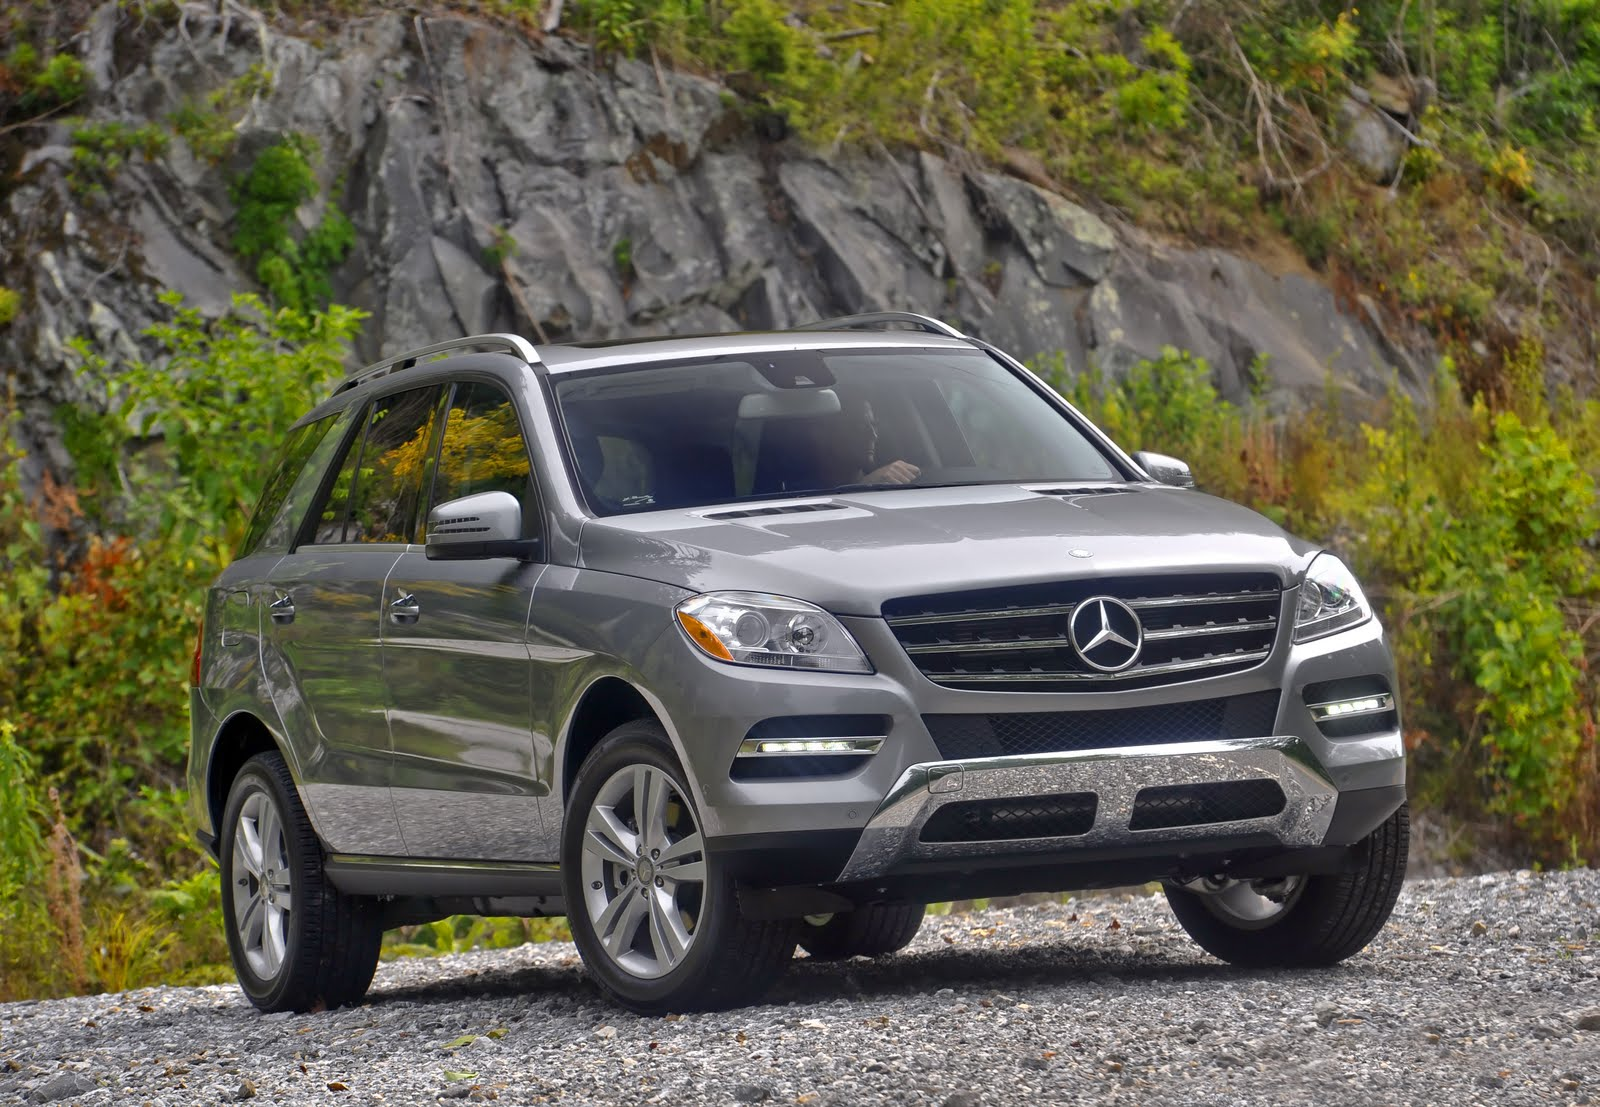 2017 Mercedes M Cl Ml350 Review Abundant Technology For A Safer Ride W Off Road Video